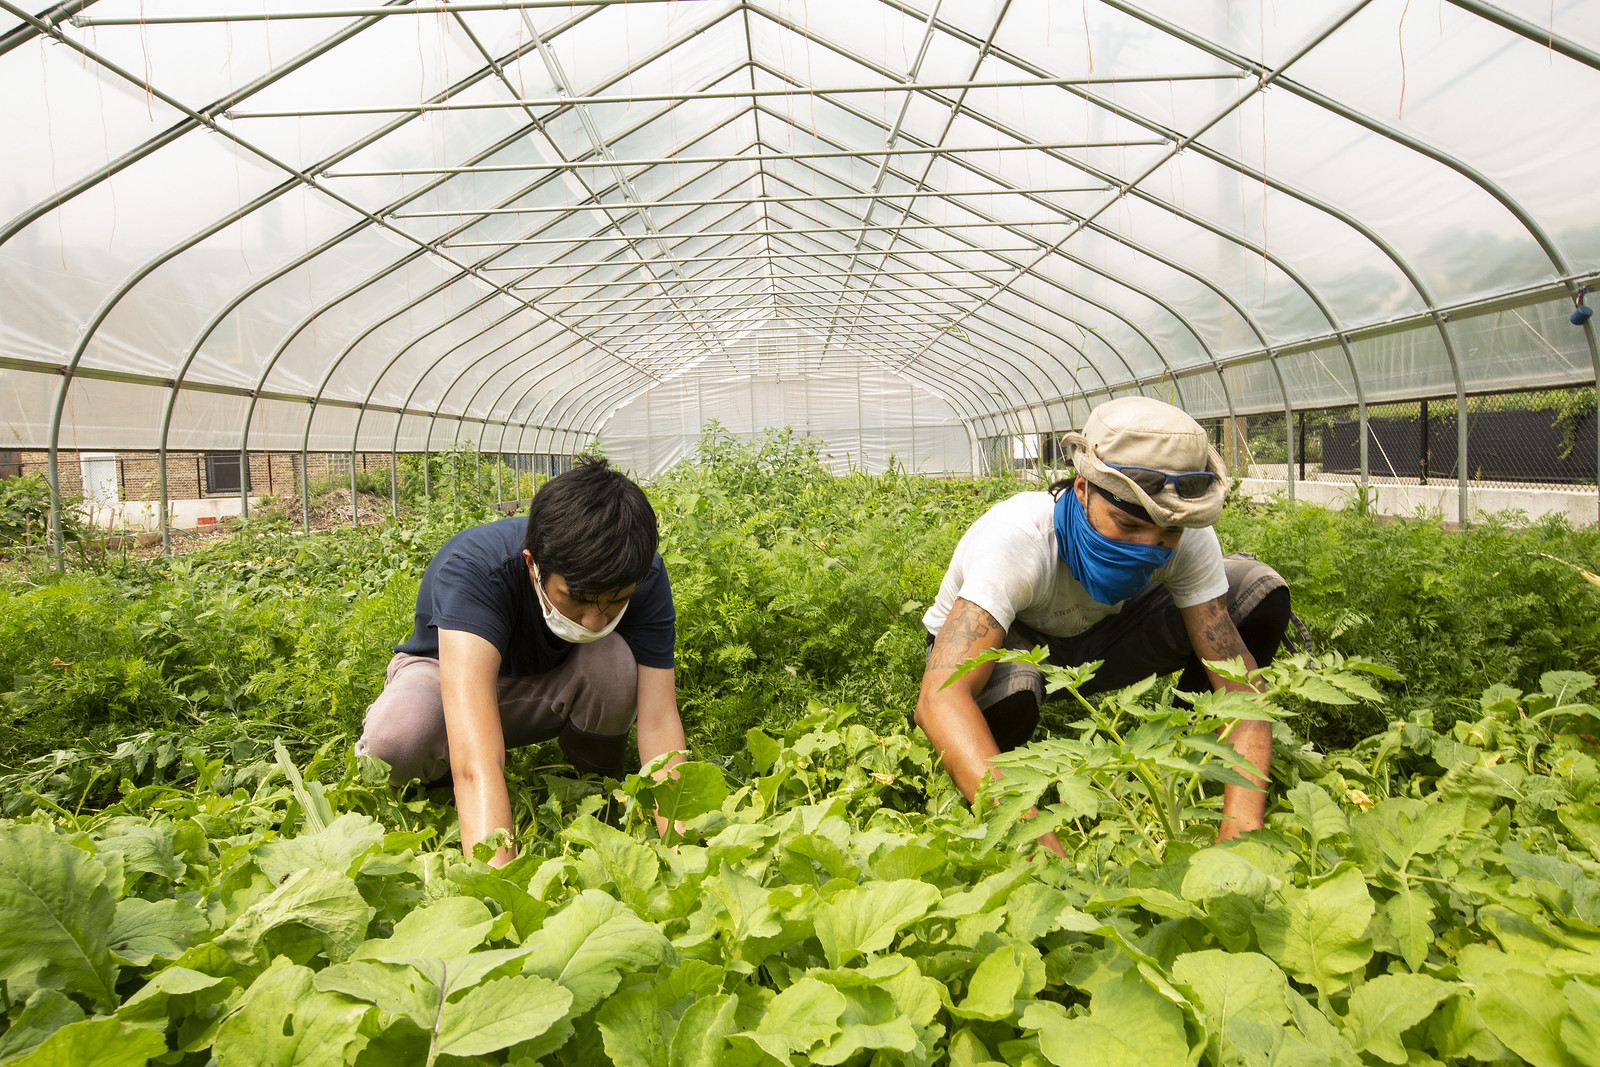 Two people kneeled down harvesting green crops inside a greenhouse.